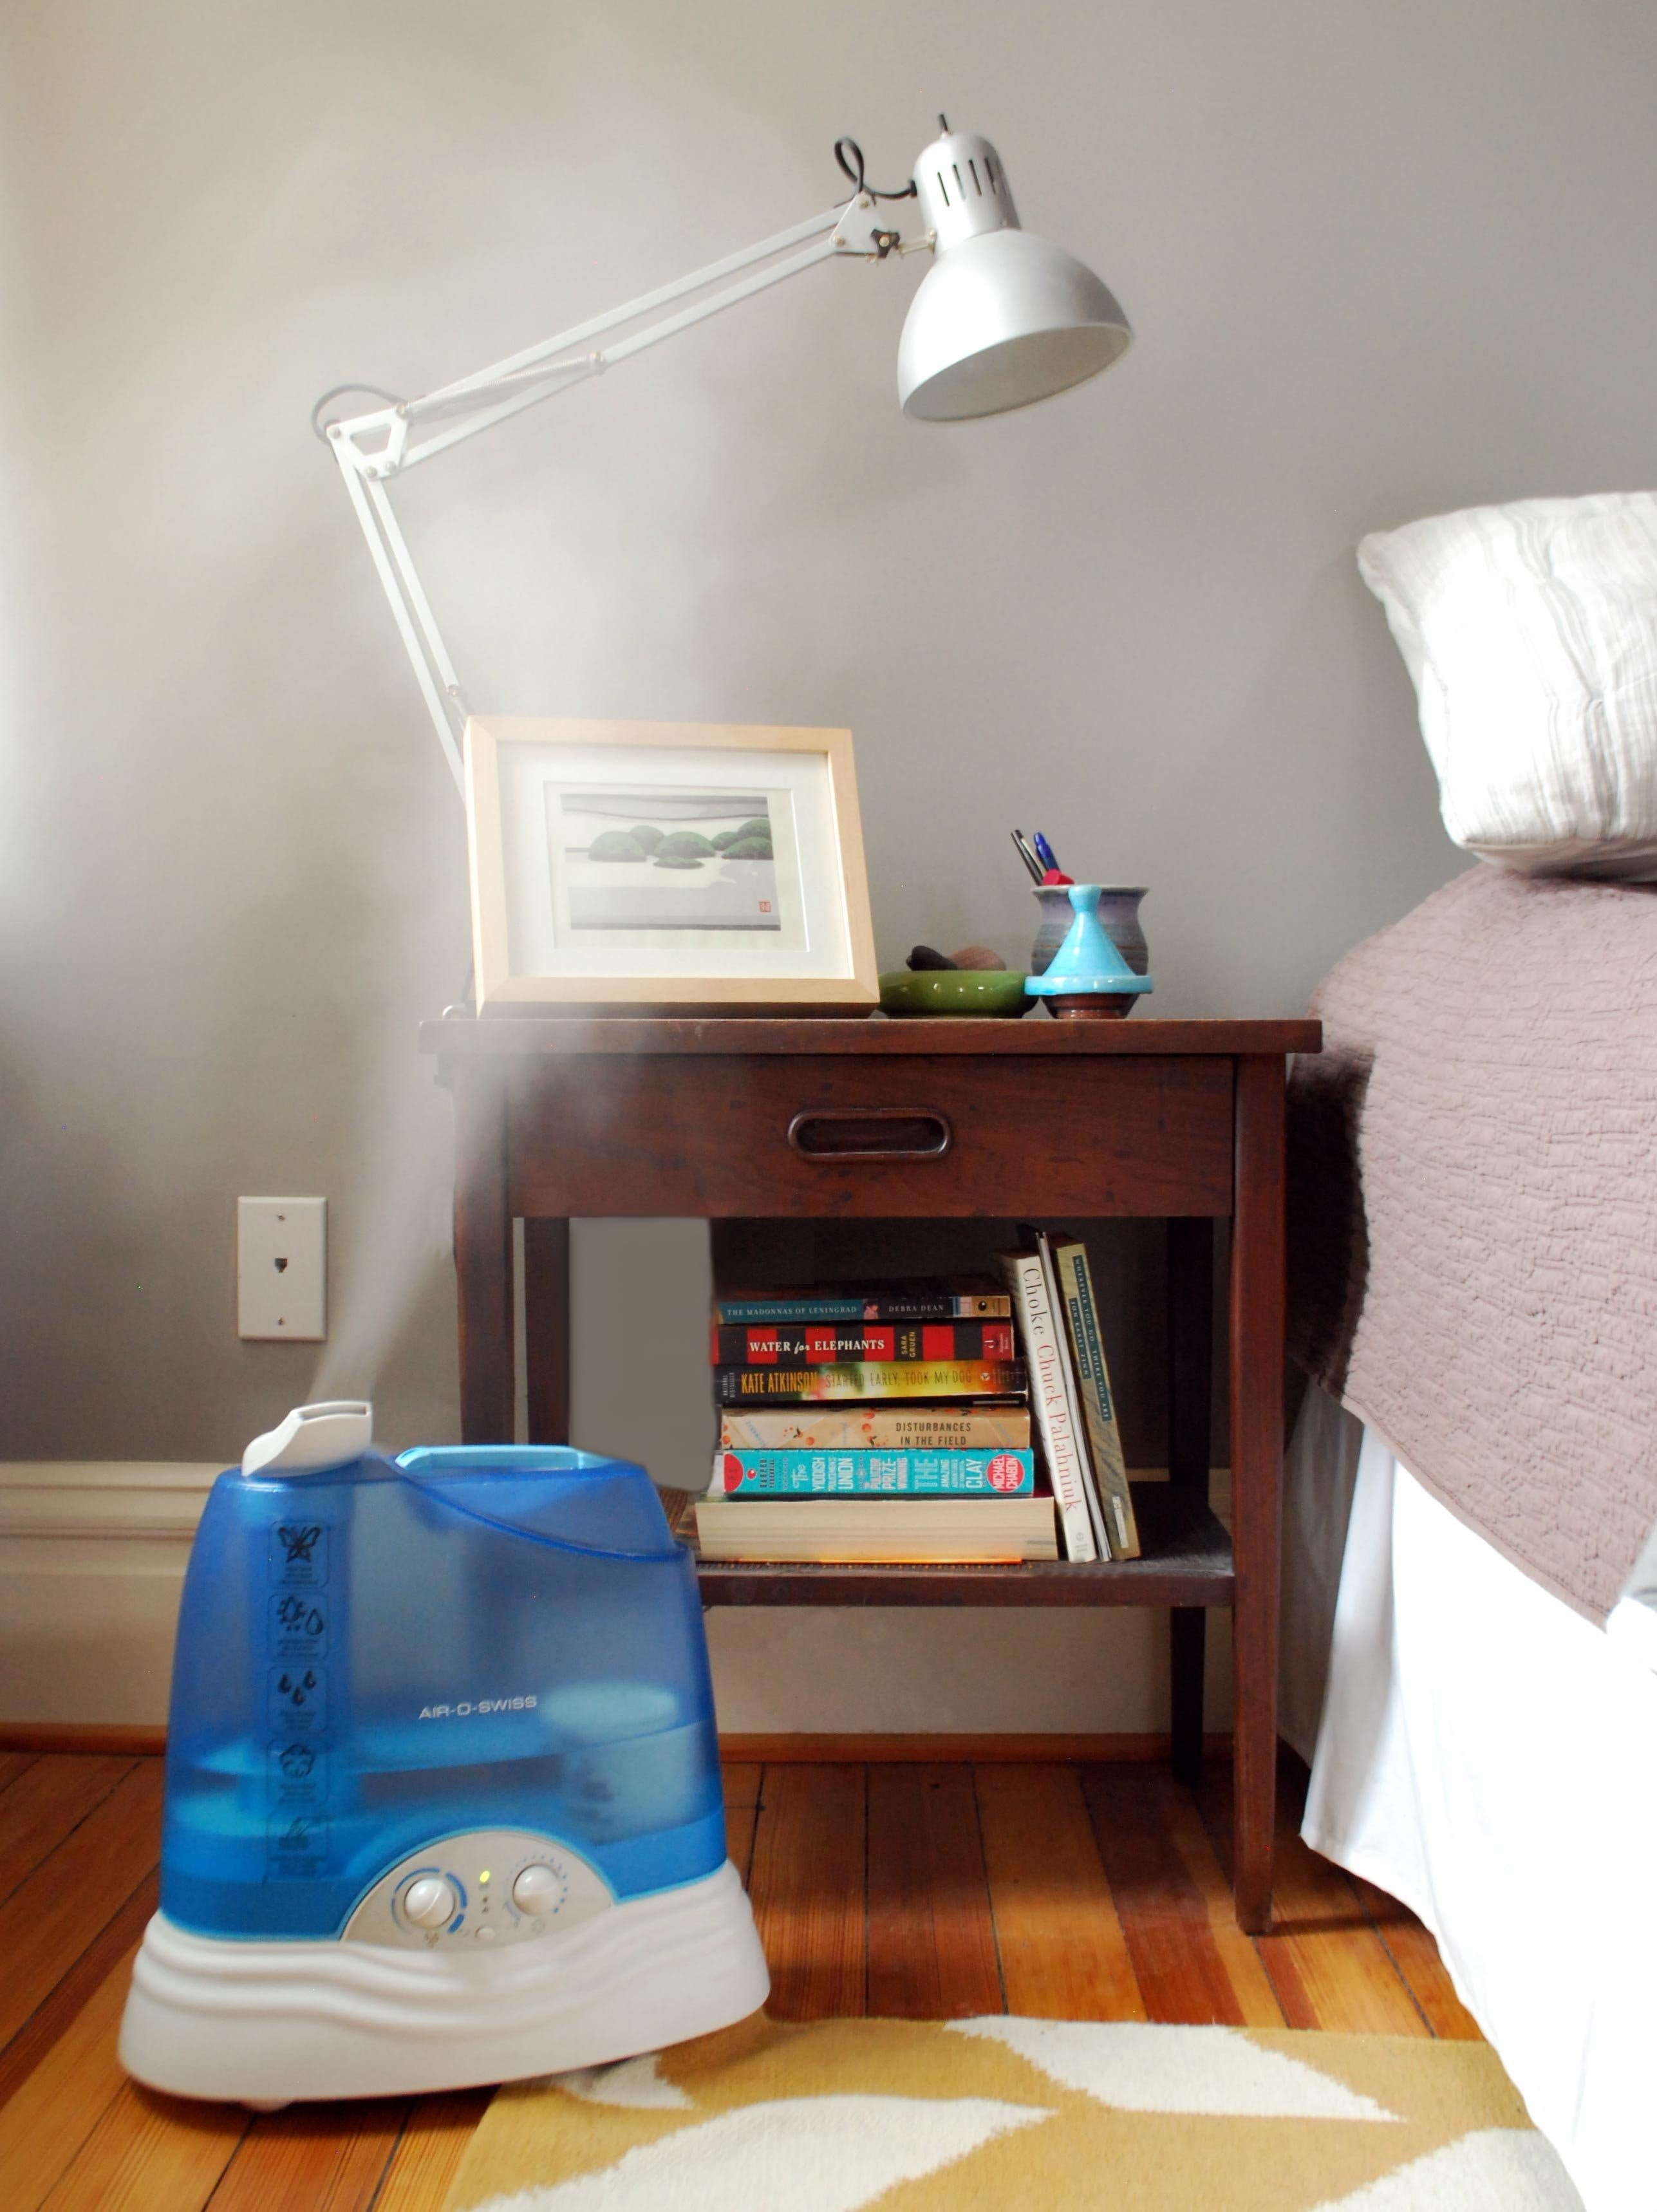 How To Clean A Humidifier How To Clean Humidifier Humidifier Bedroom Night Stands